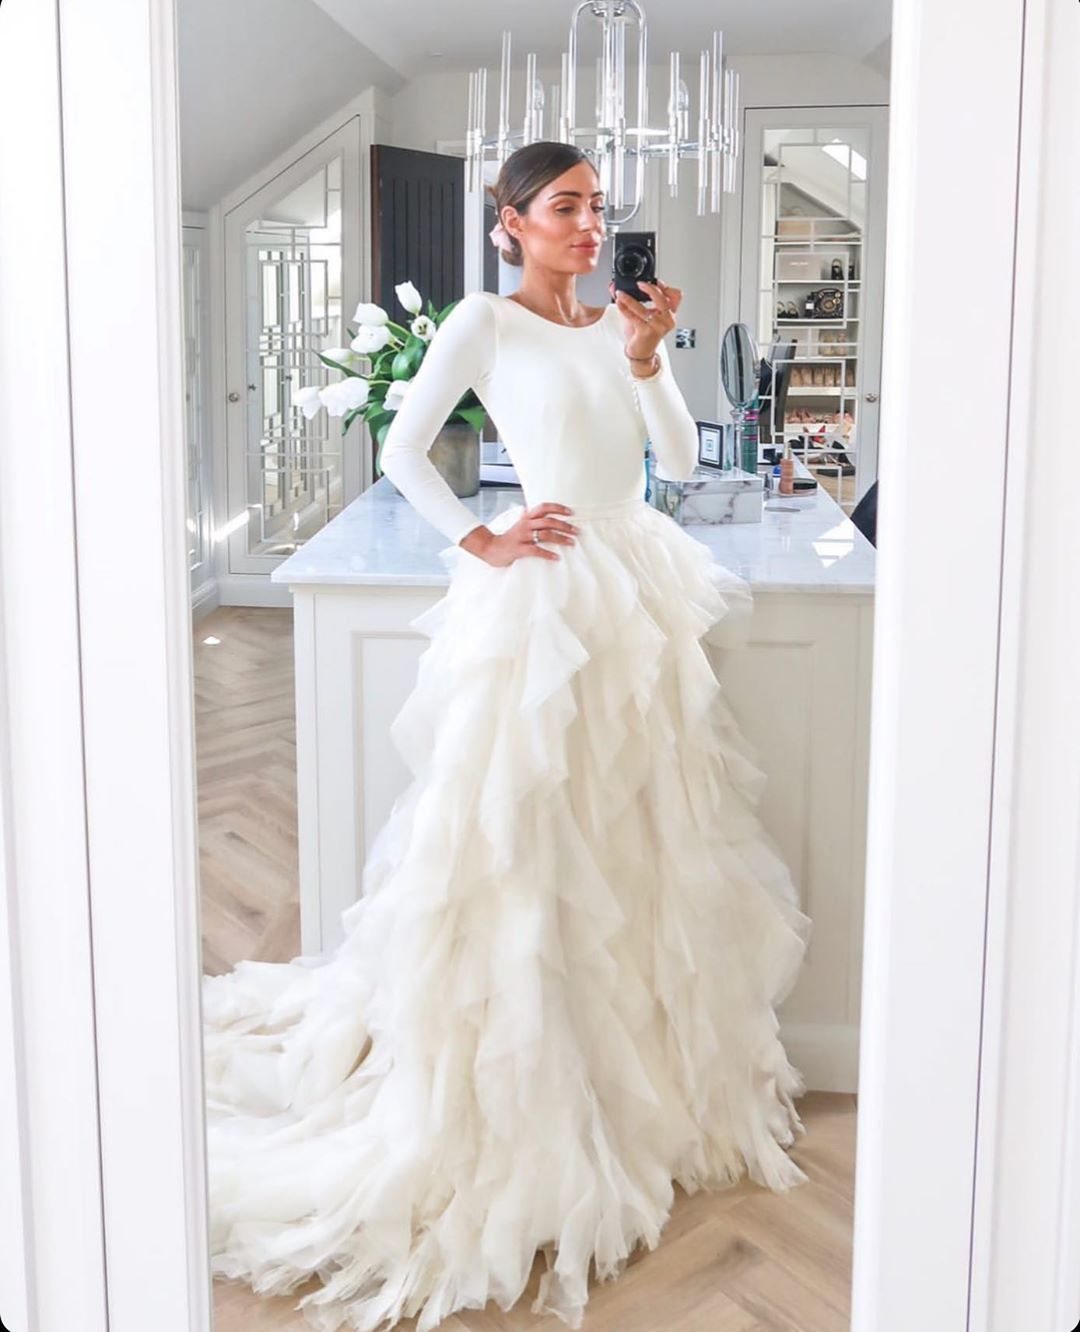 Kate Halfpenny On Instagram When You Get A Message From The Gorgeous Lydiaemillen On A Friday Night Wedding Dresses Lydia Elise Millen Dream Wedding Dresses